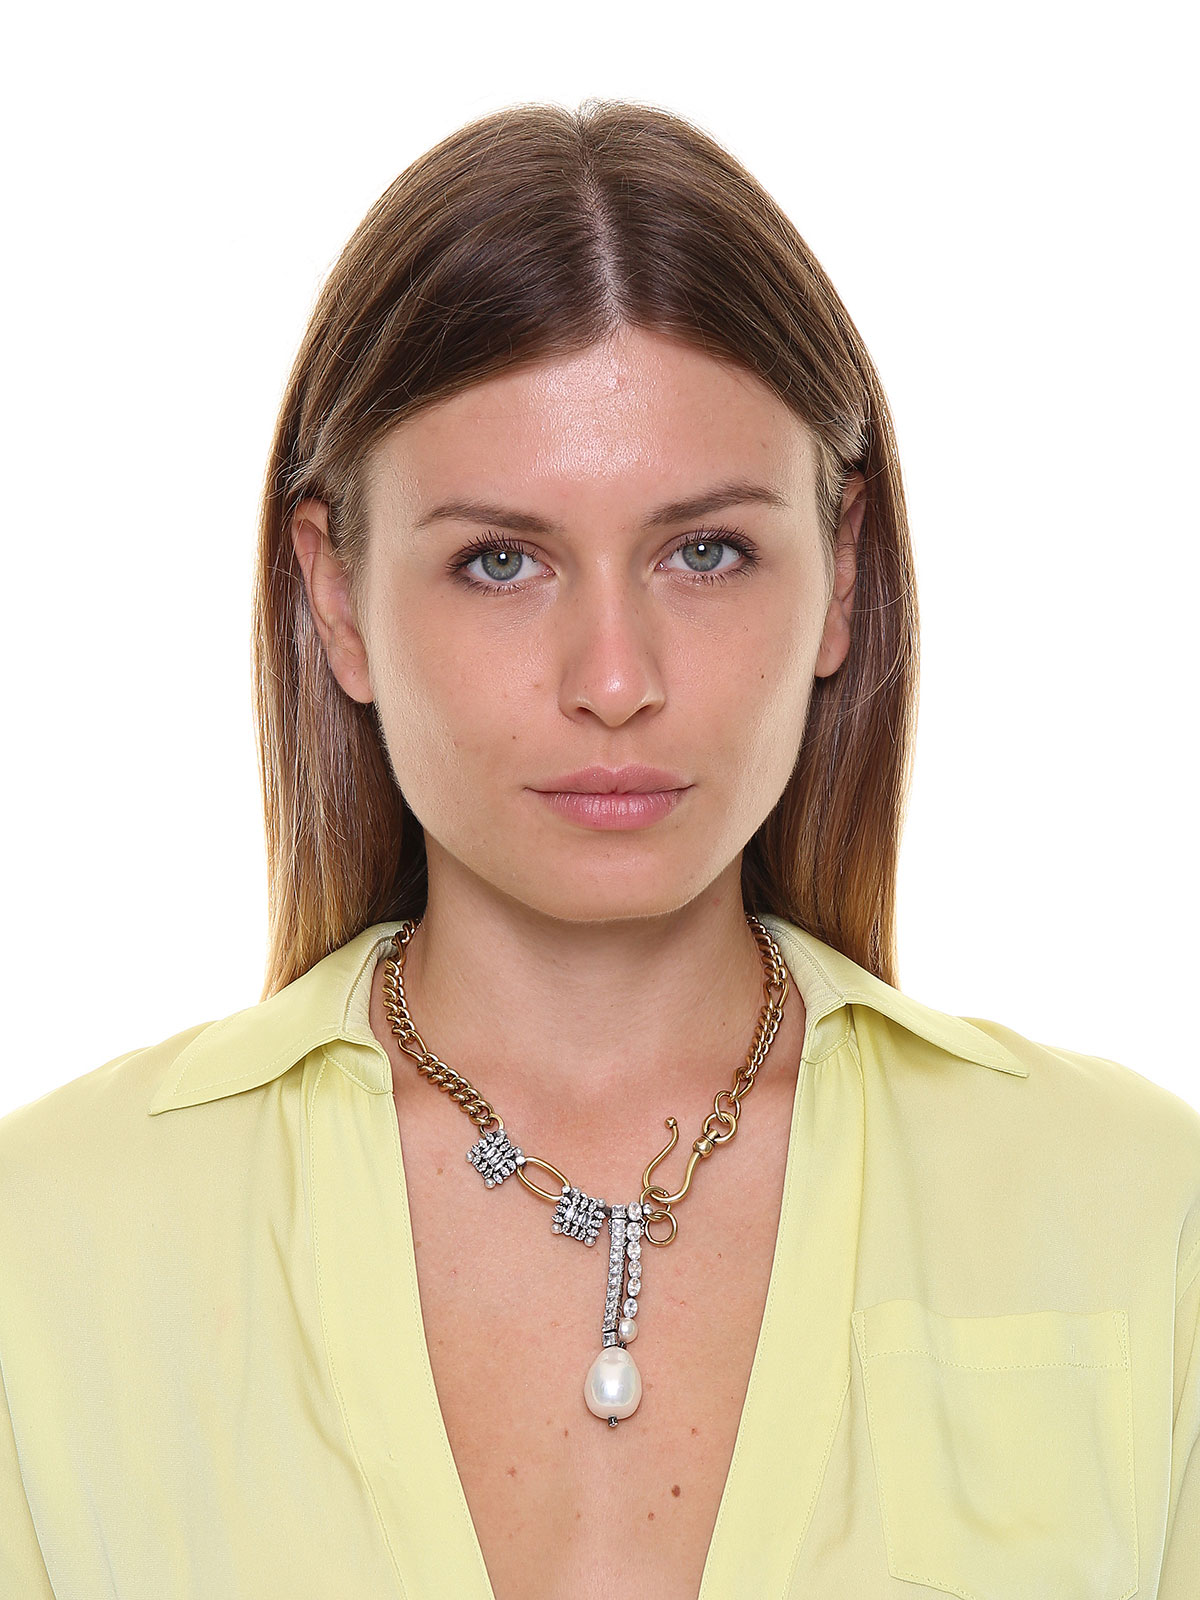 Chain necklace with jewel charms